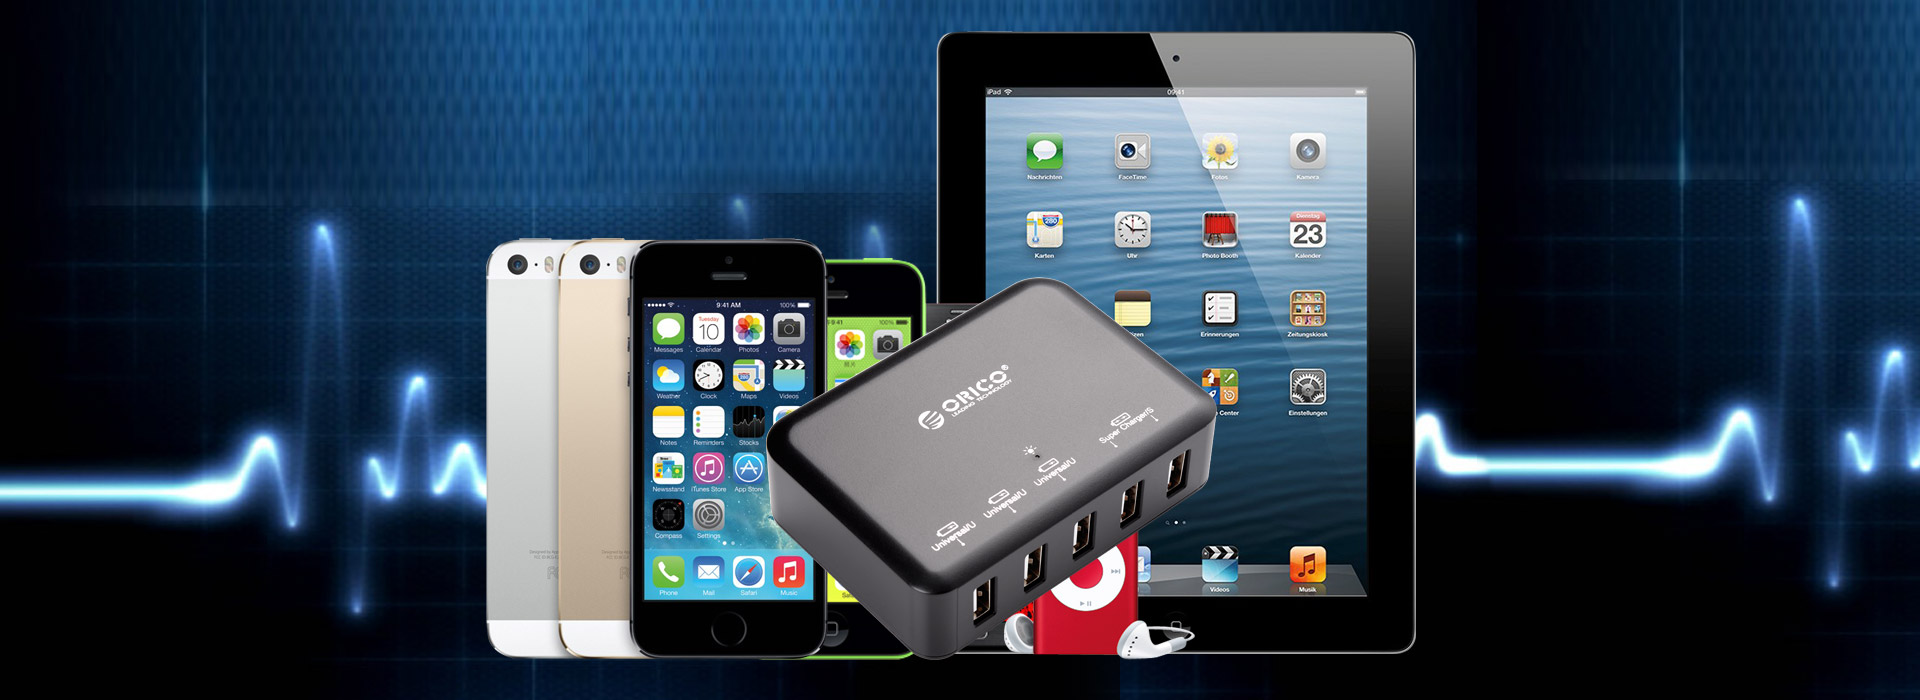 the 5-port charger can Intelligently recognizes devices